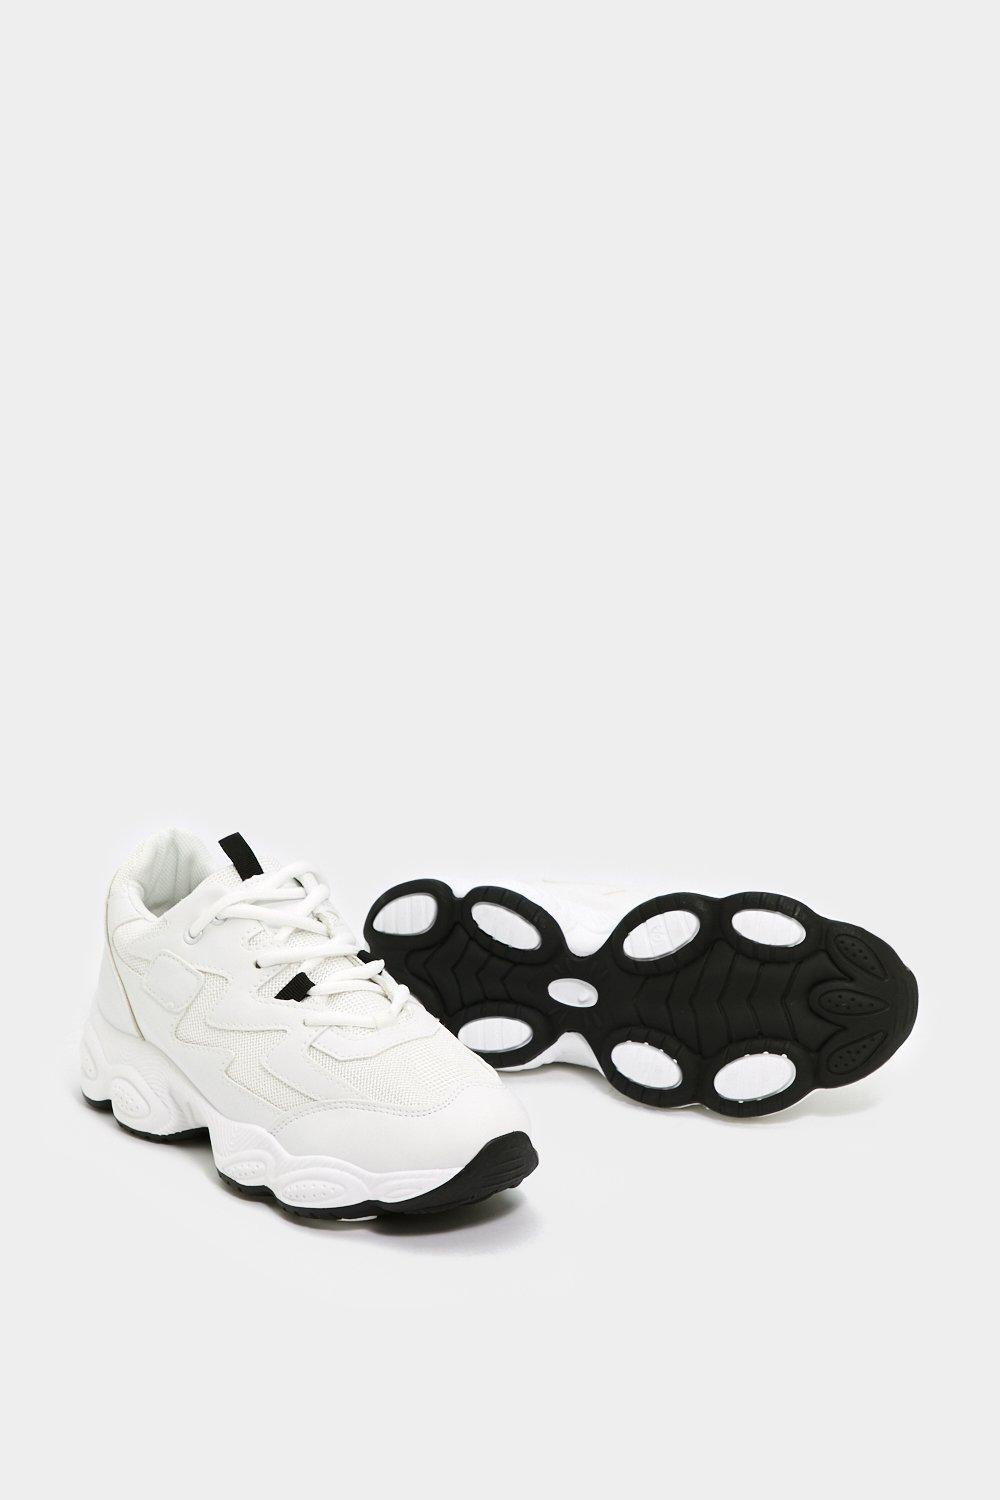 3ef15a930d1 Bubble Maker Chunky Sneaker | Shop Clothes at Nasty Gal!